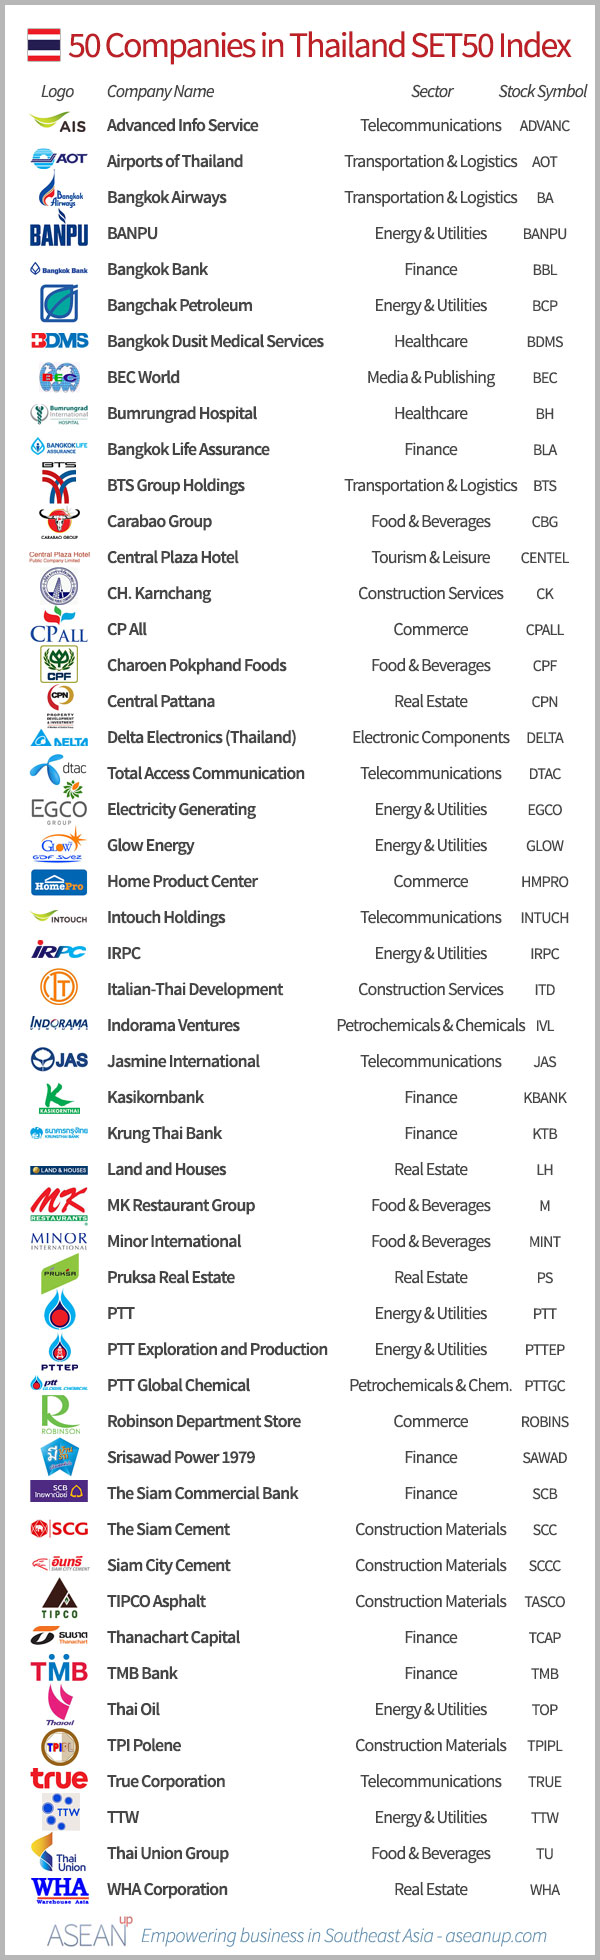 List of the 50 Thai companies in the SET50 index, with logo, sector and stock symbol